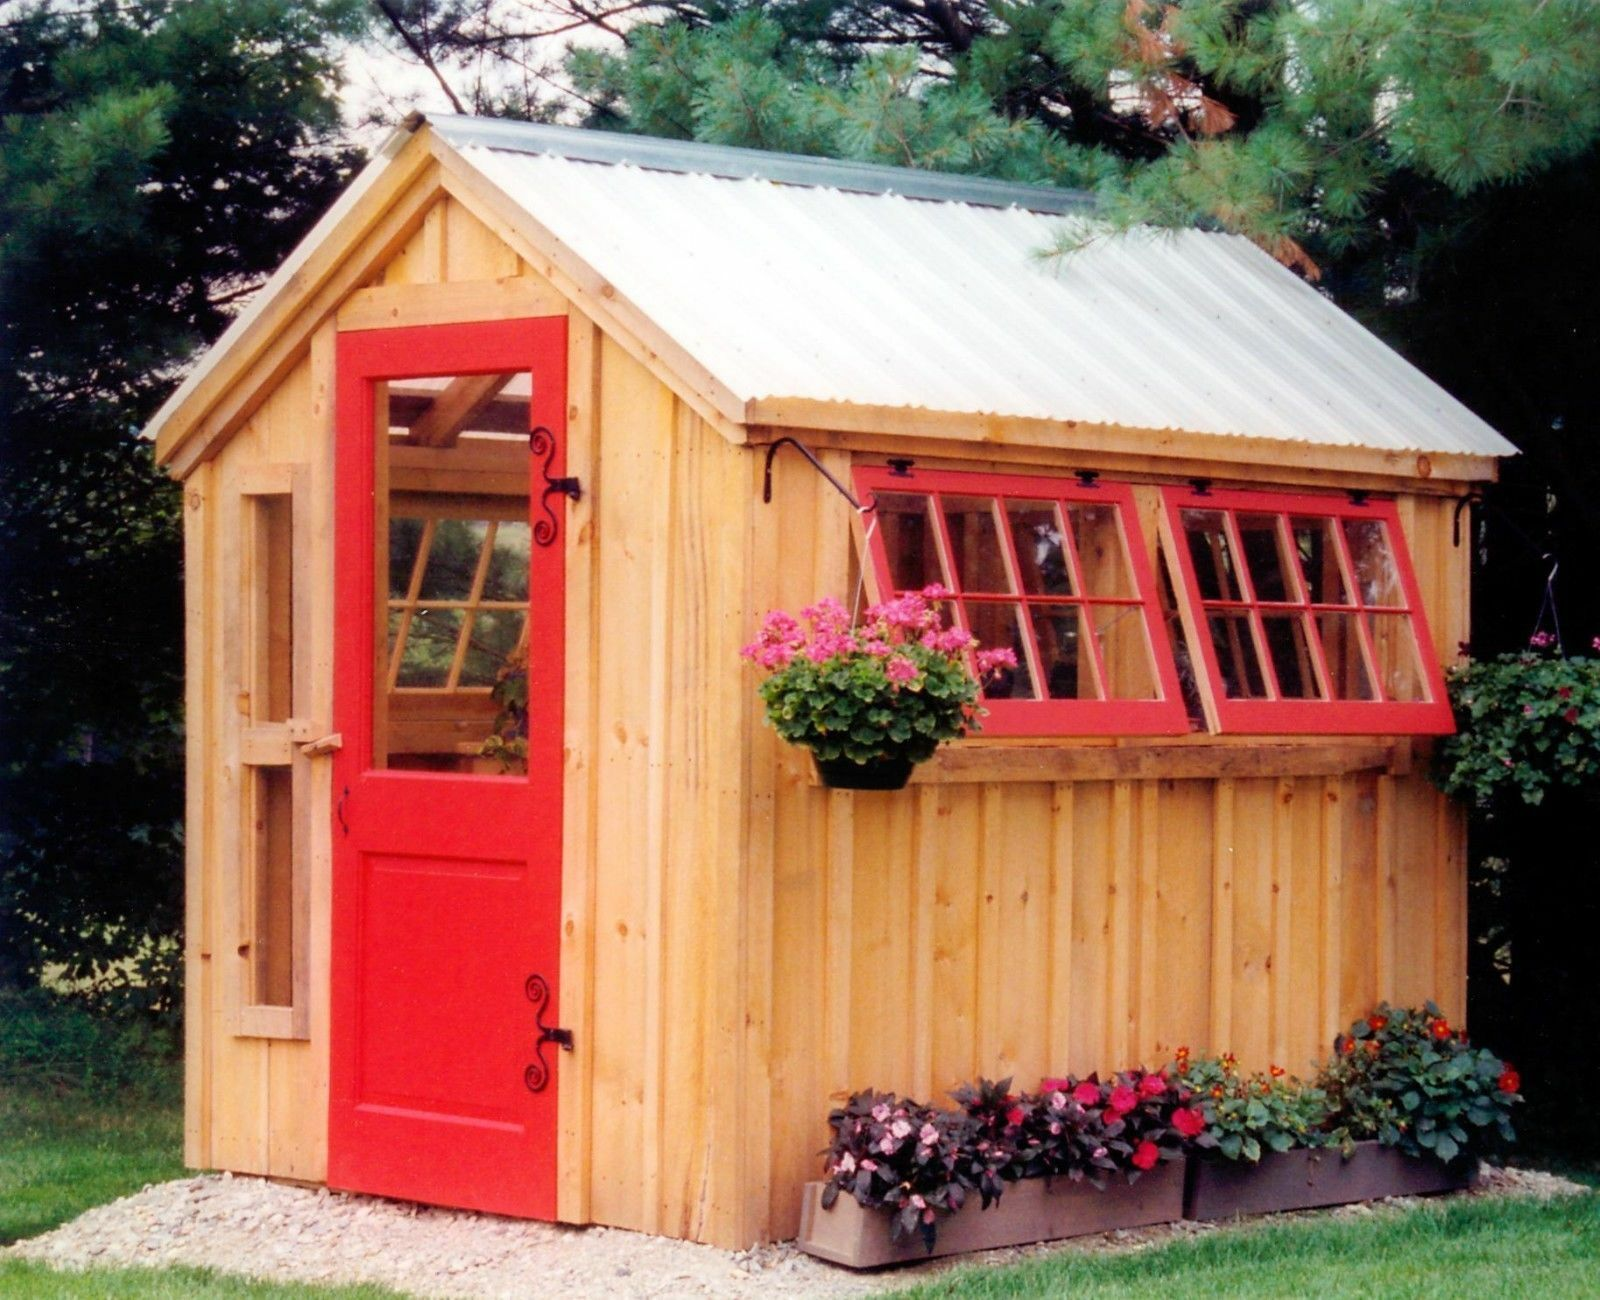 How to Build a 6x8 Shed | eBay